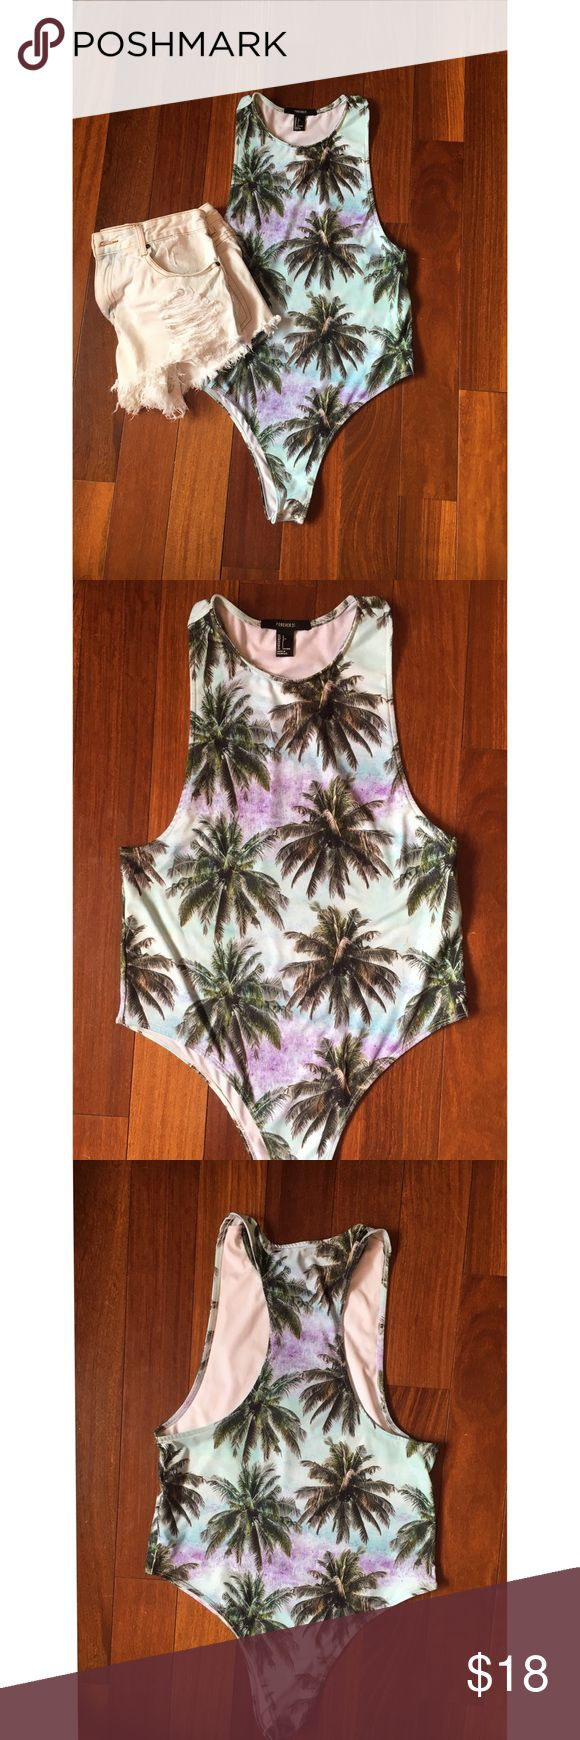 Forever 21 palm print bodysuit / swimsuit Super cute palm tree print body suit. Can be worn as hit suit. Worn once. Racer back and snap bottom. Forever 21 Tops